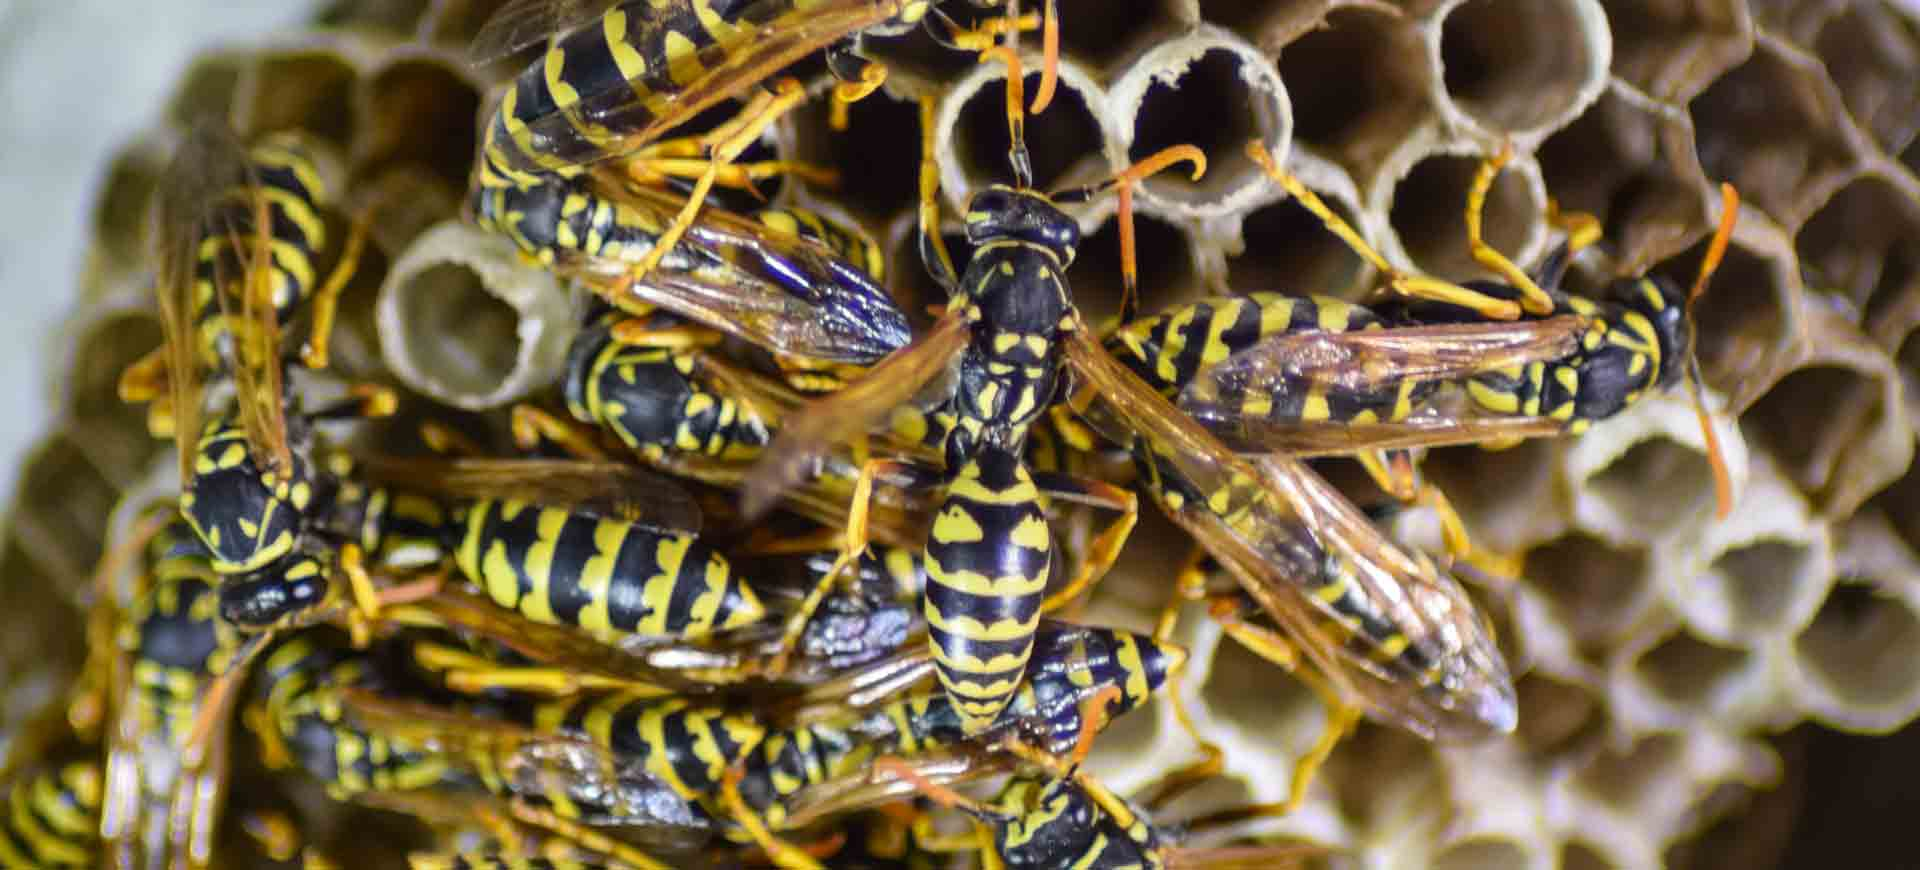 wasp pest control lakeside